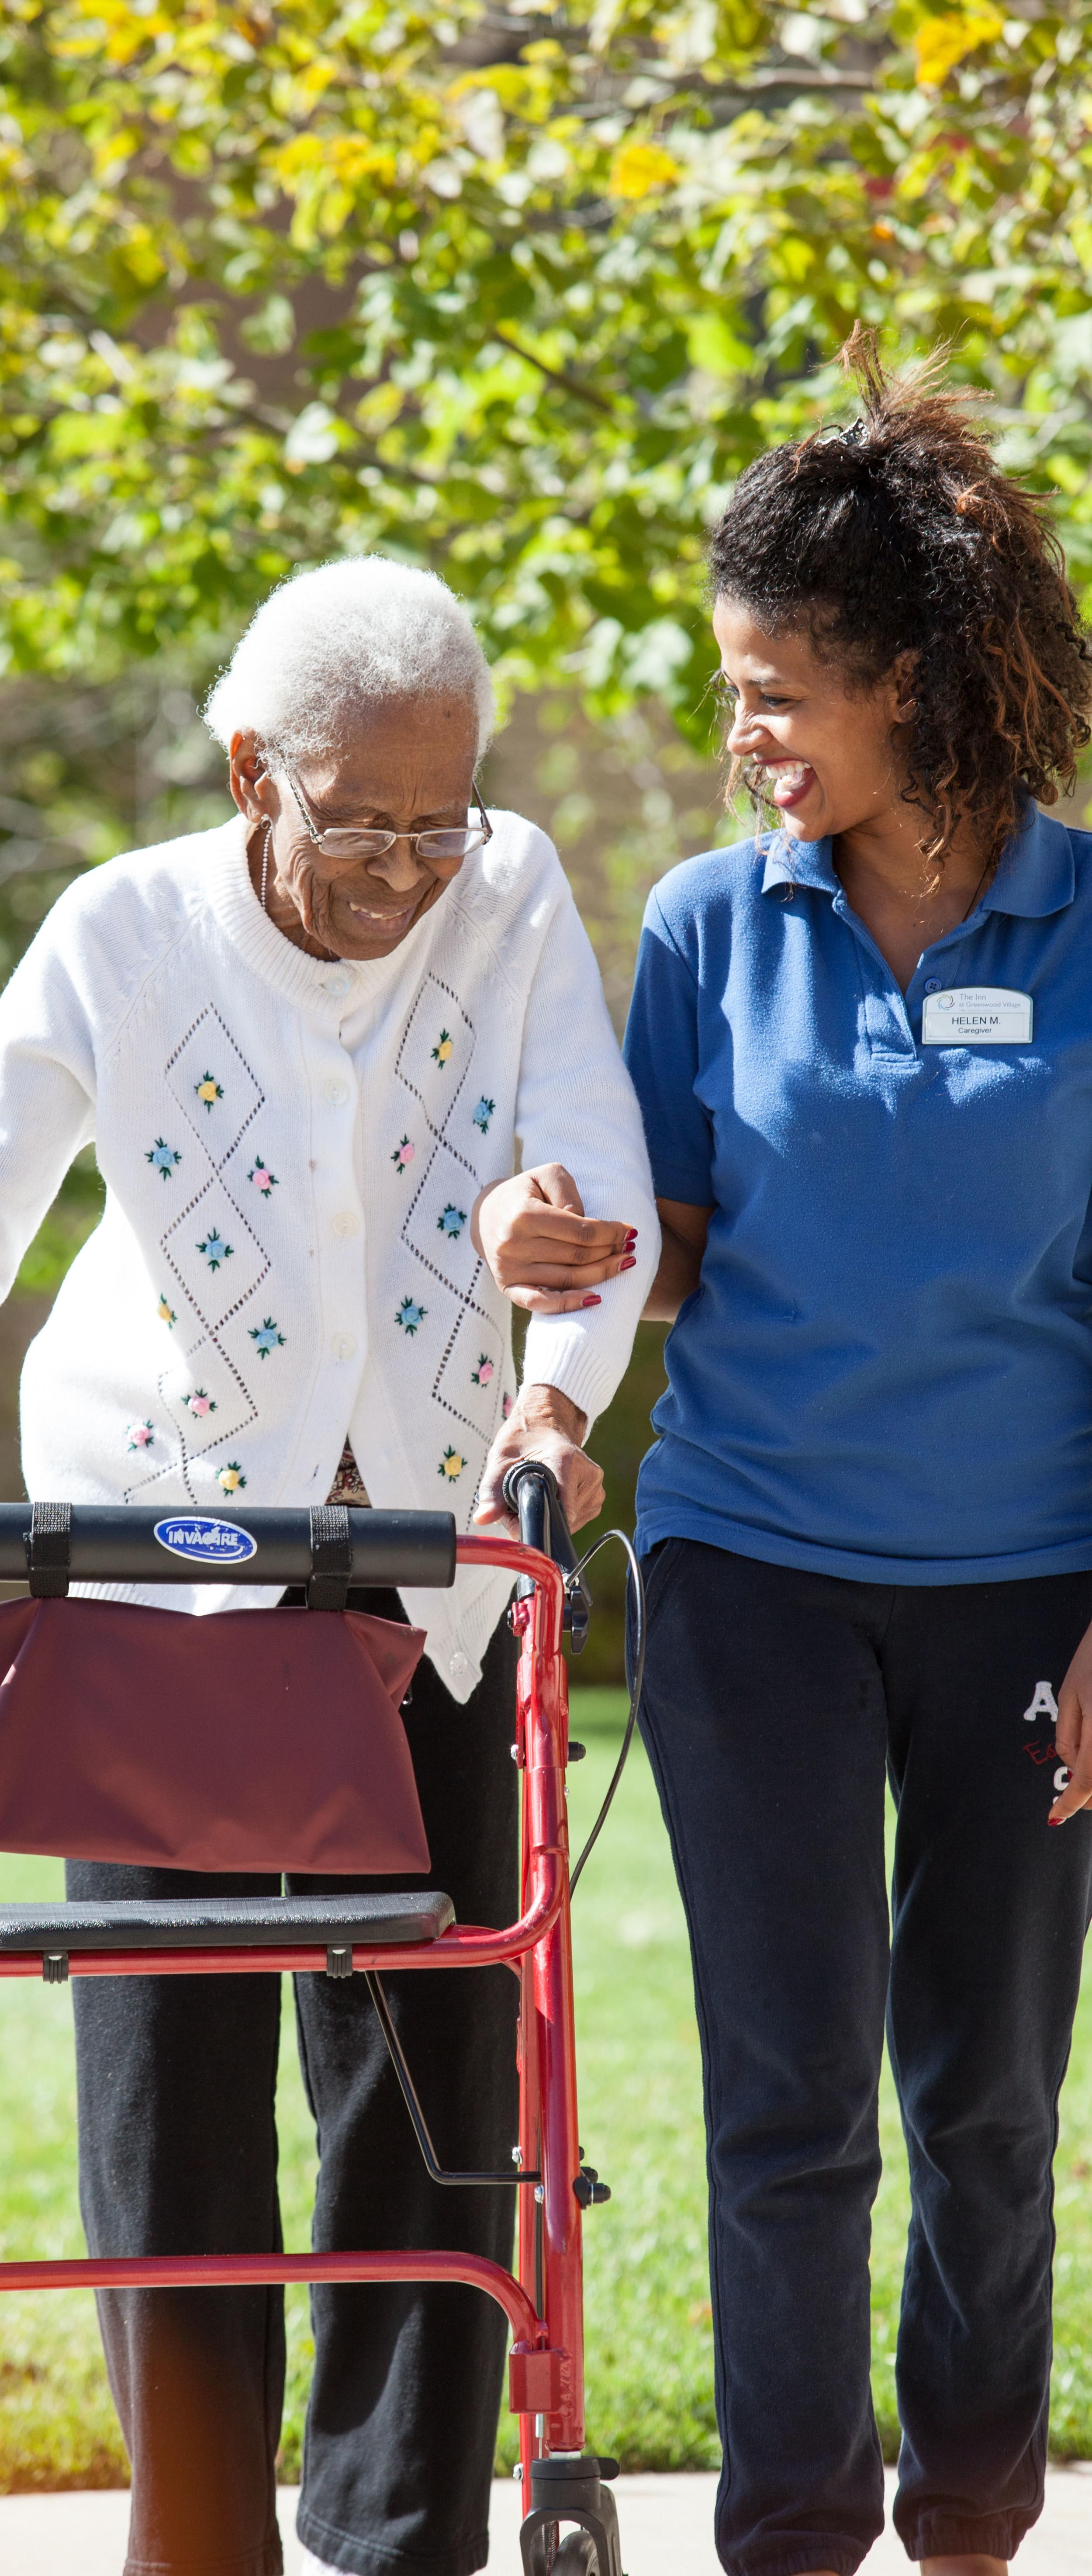 Senior living in Greenwood Village offer assisted living for you or your loved ones